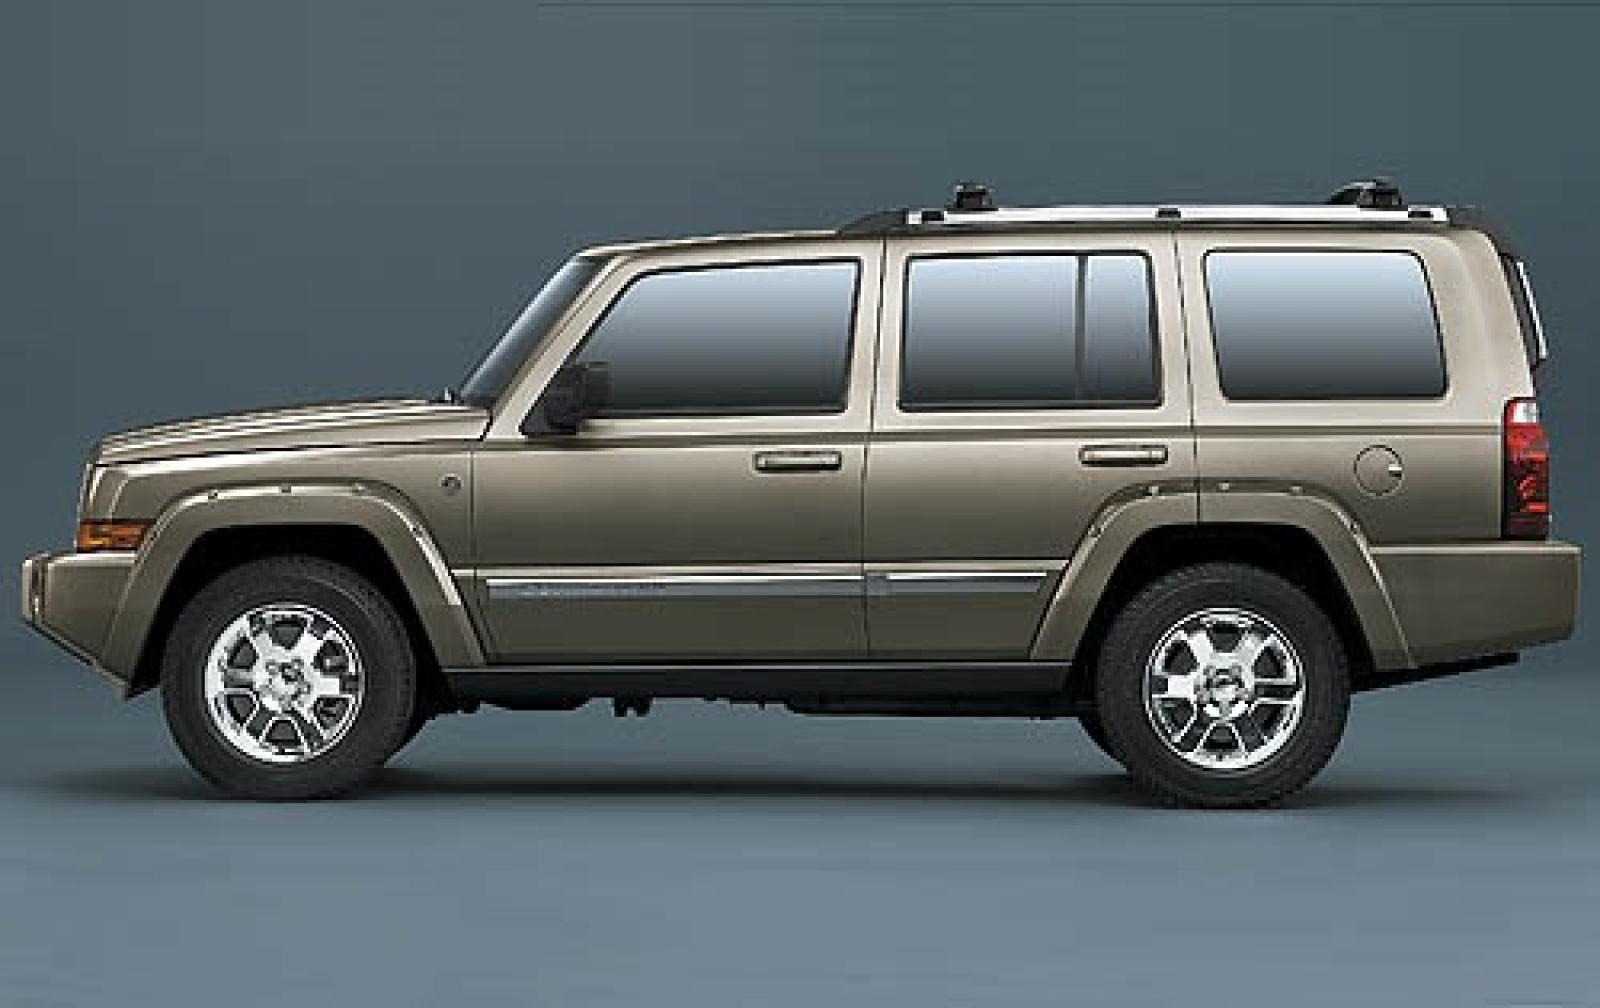 2007 jeep commander information and photos zombiedrive. Black Bedroom Furniture Sets. Home Design Ideas